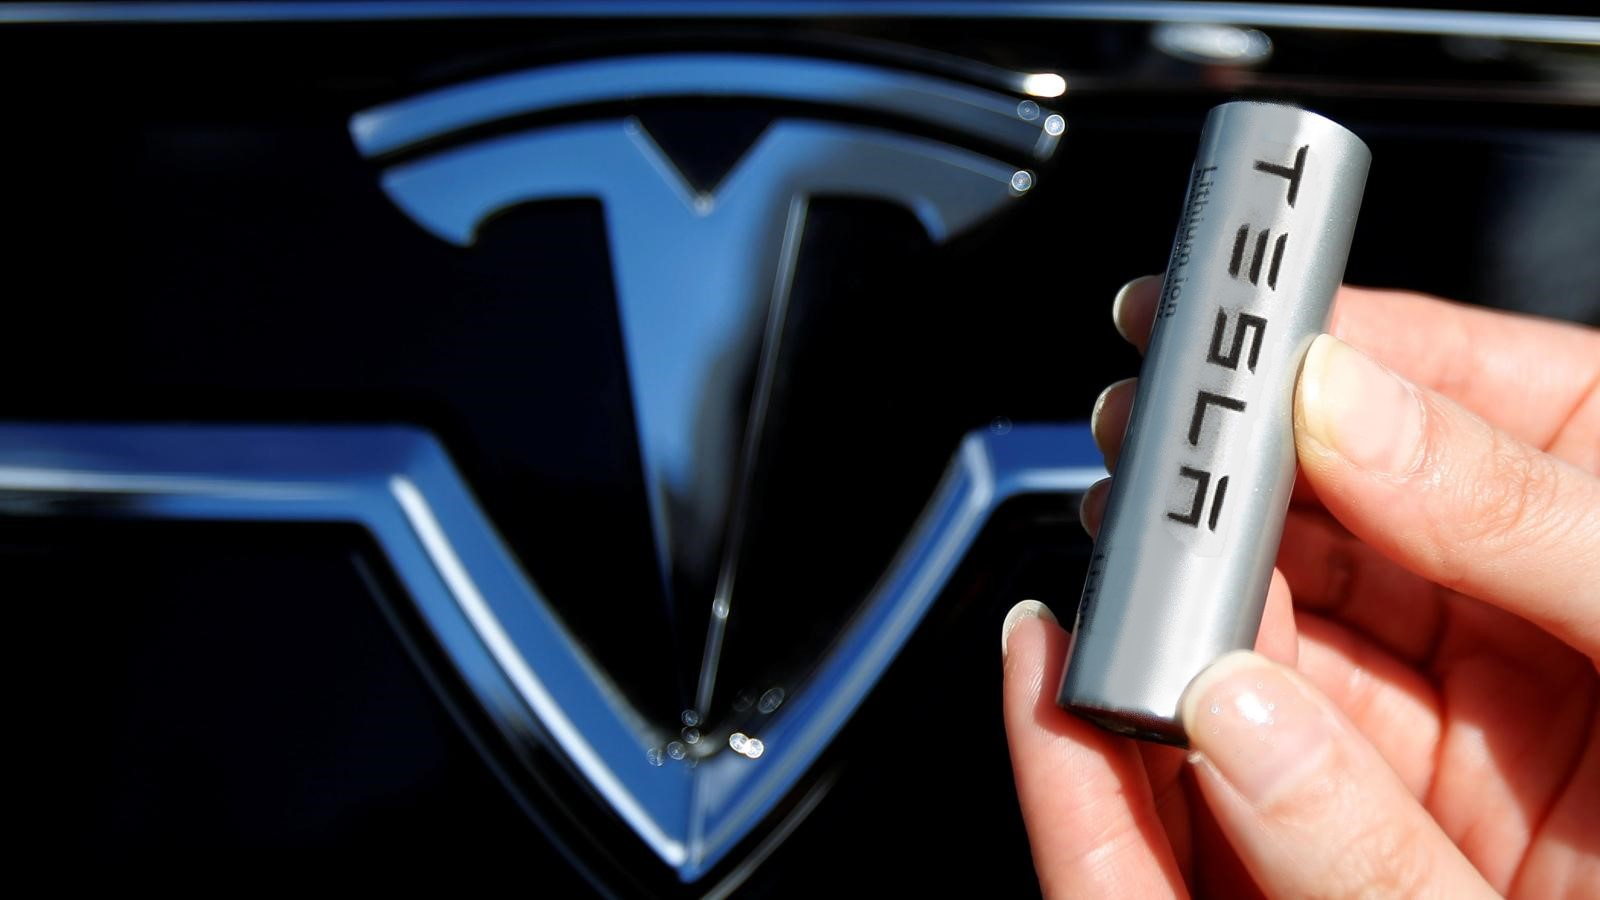 Tesla Will Mainly Focus on Battery in The Upcoming Investor Day, Says Elon Musk